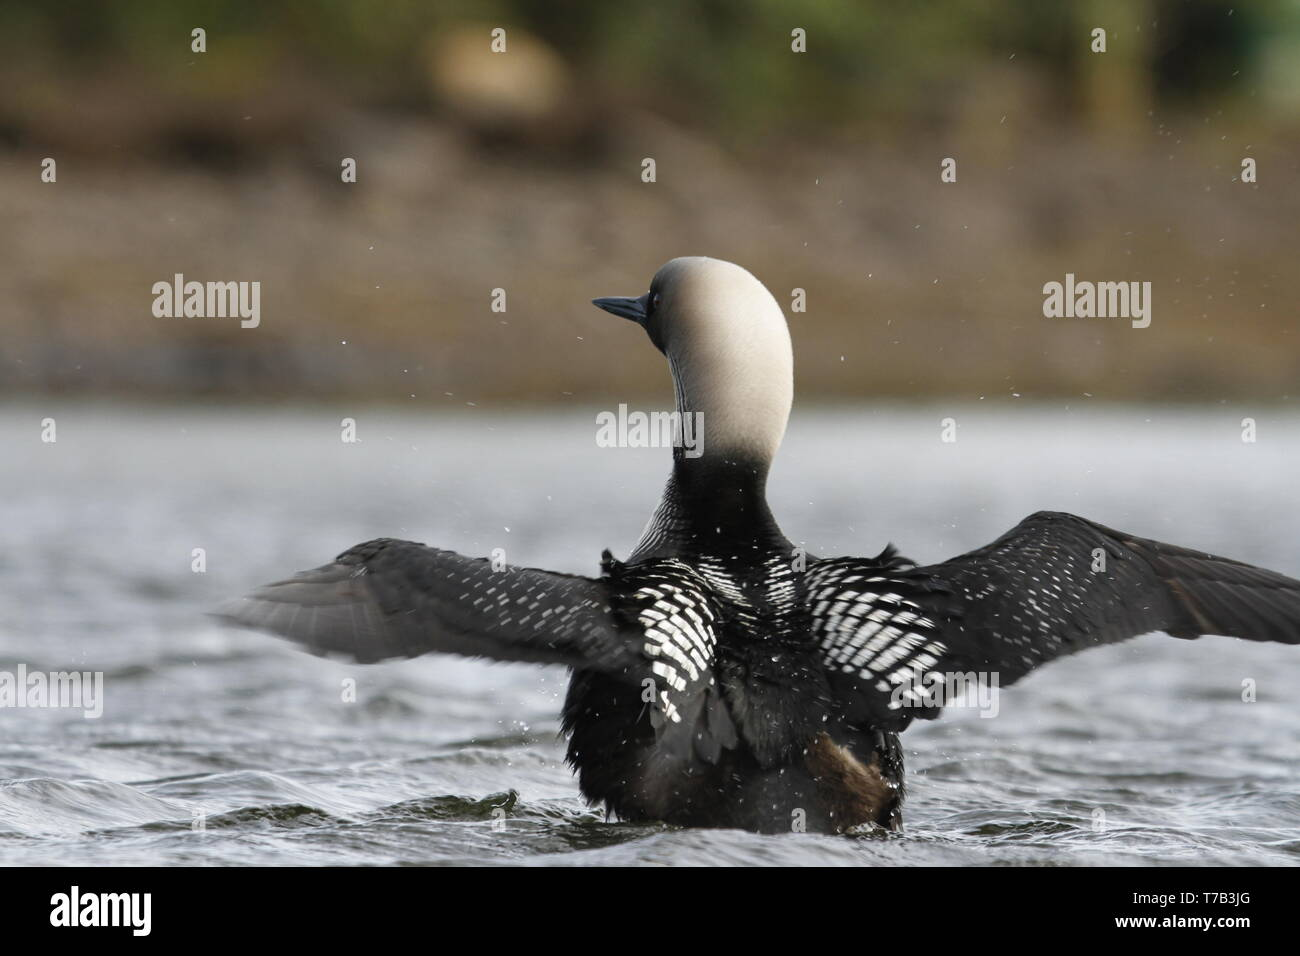 Adult Pacific Loon or Pacific Diver (Gavia pacifica), breeding plumage, with outstretched wings on water, near Arviat Nunavut, Canada - Stock Image